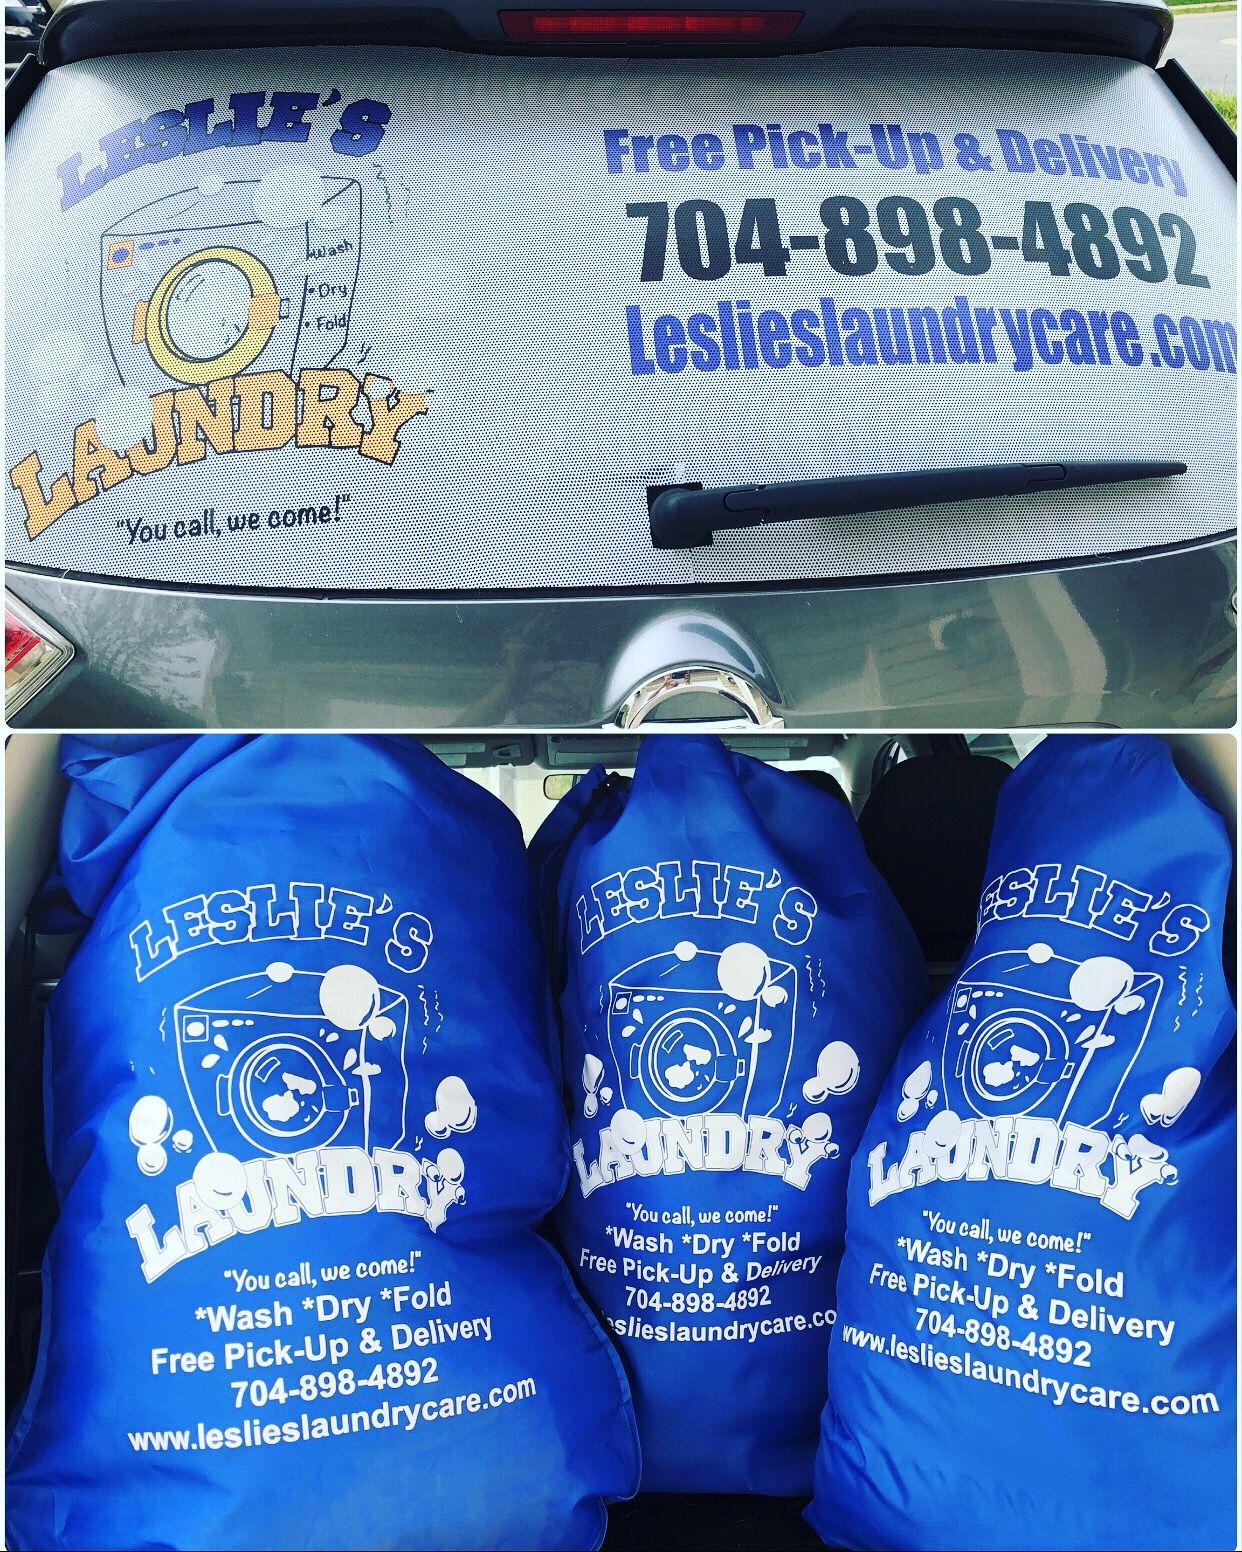 Full service mobile Laundry and Dry Cleaner right to your